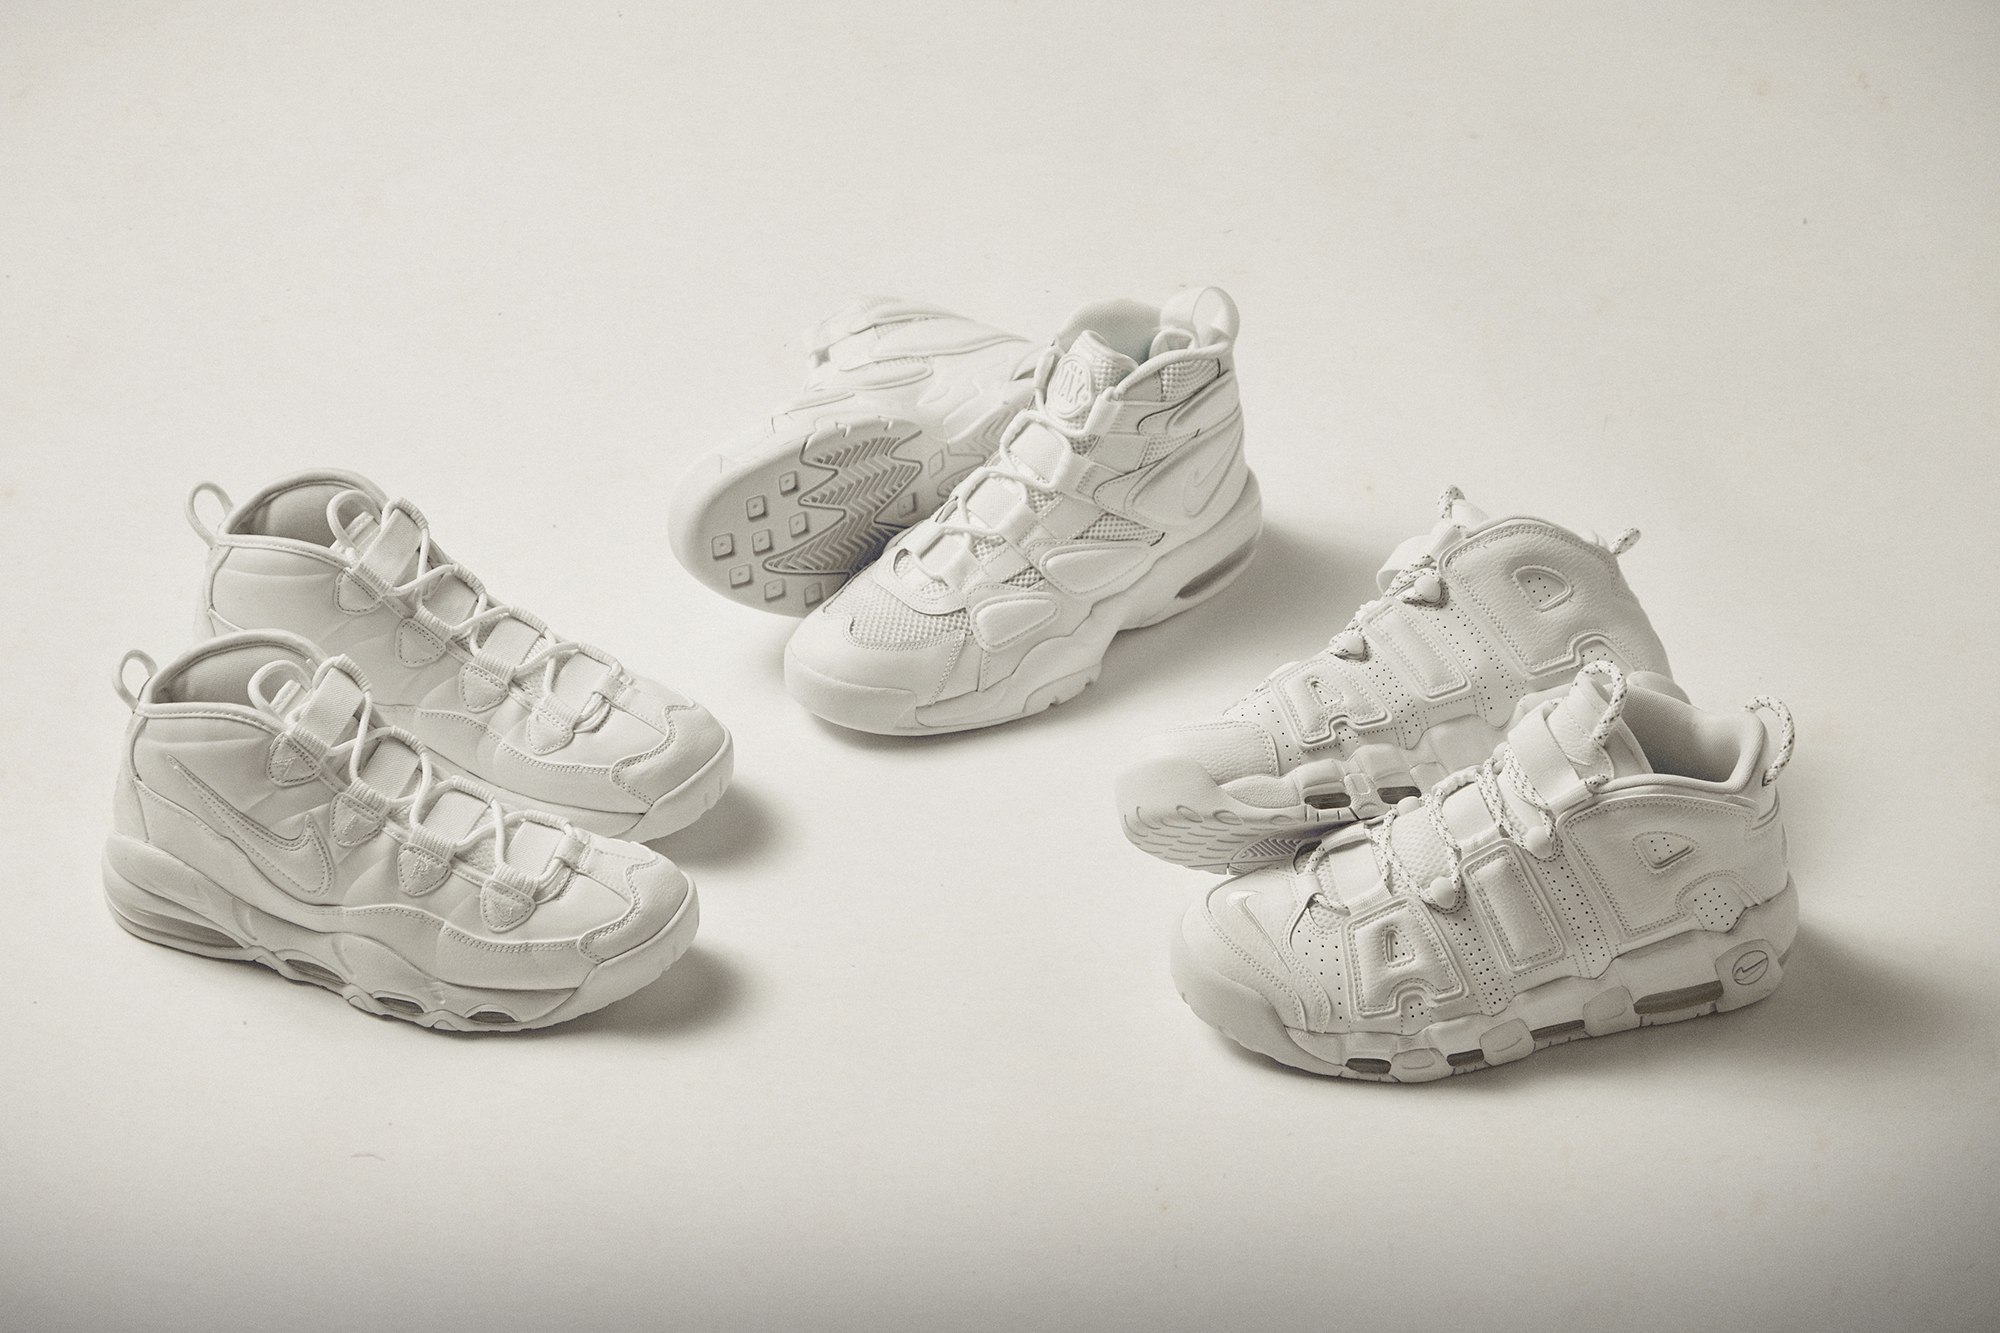 Nike Air Uptempo 'White' Pack